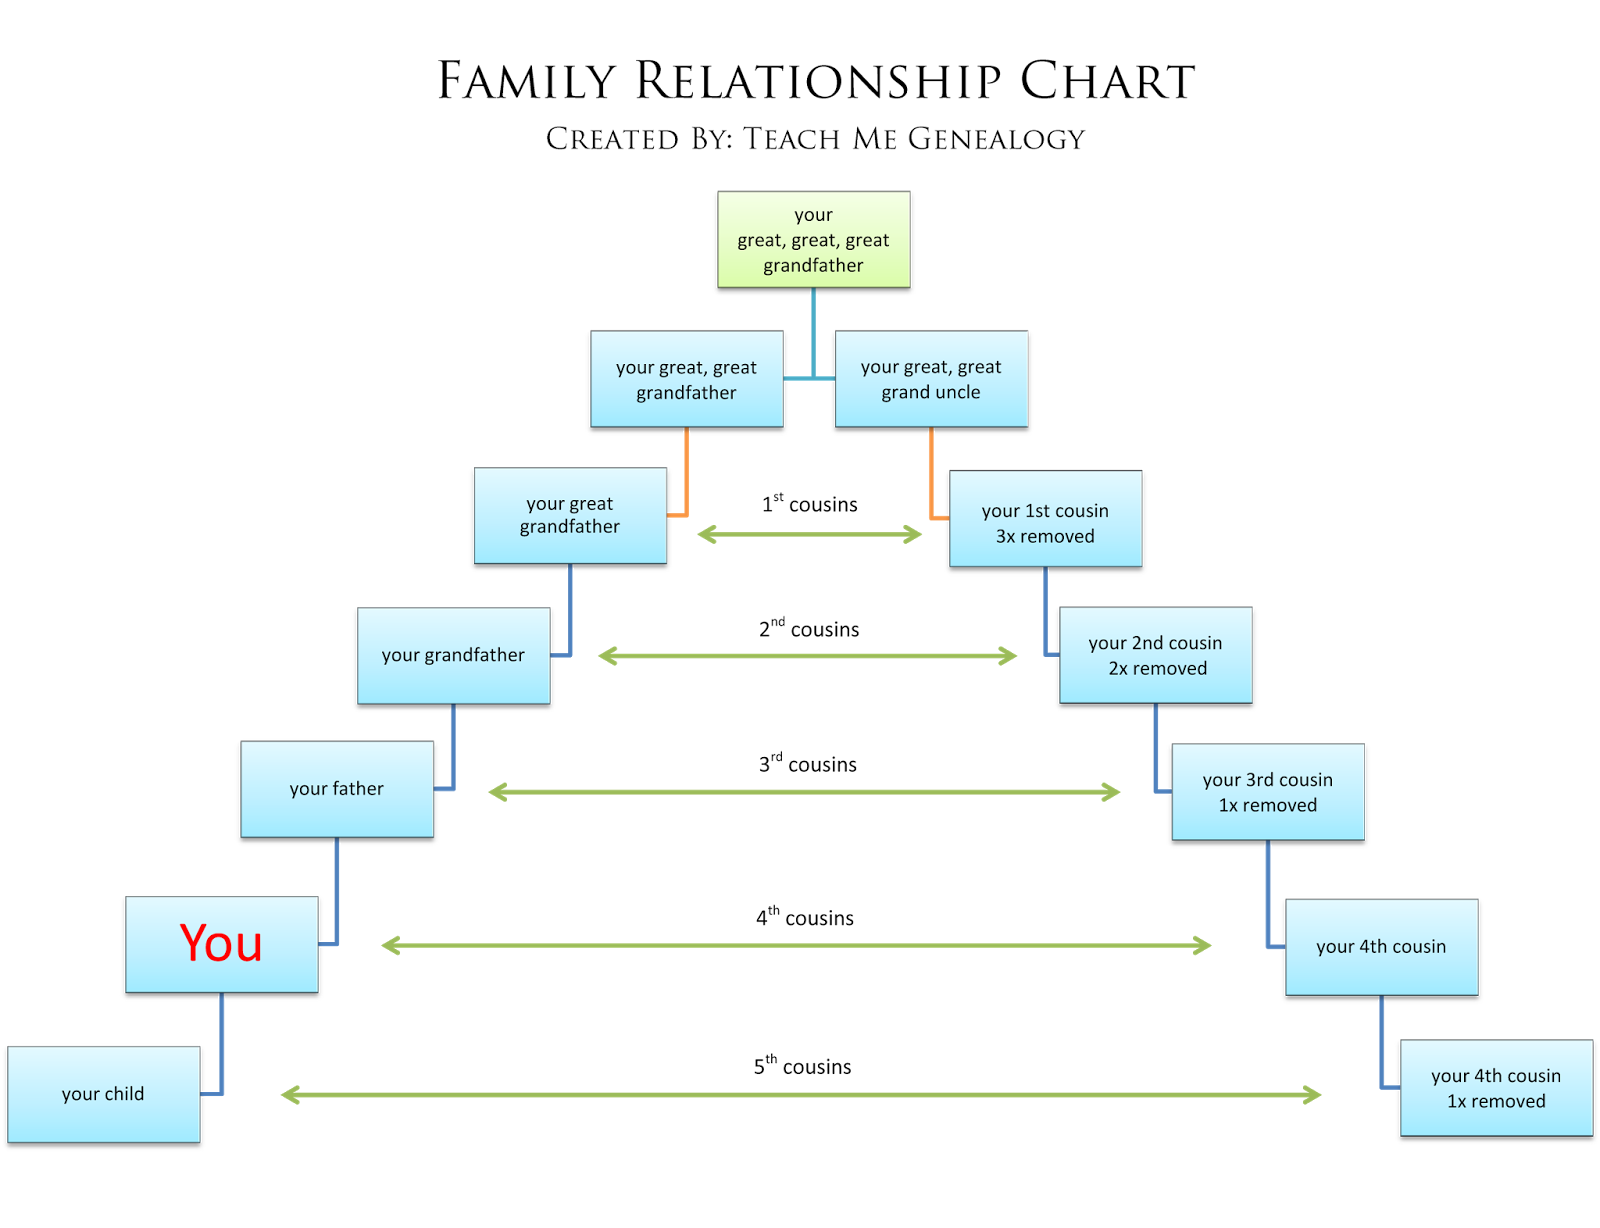 52 Weeks Of Genealogy Week 16 All About Relationship Charts Genealogy Relationship Chart Family Relationship Chart